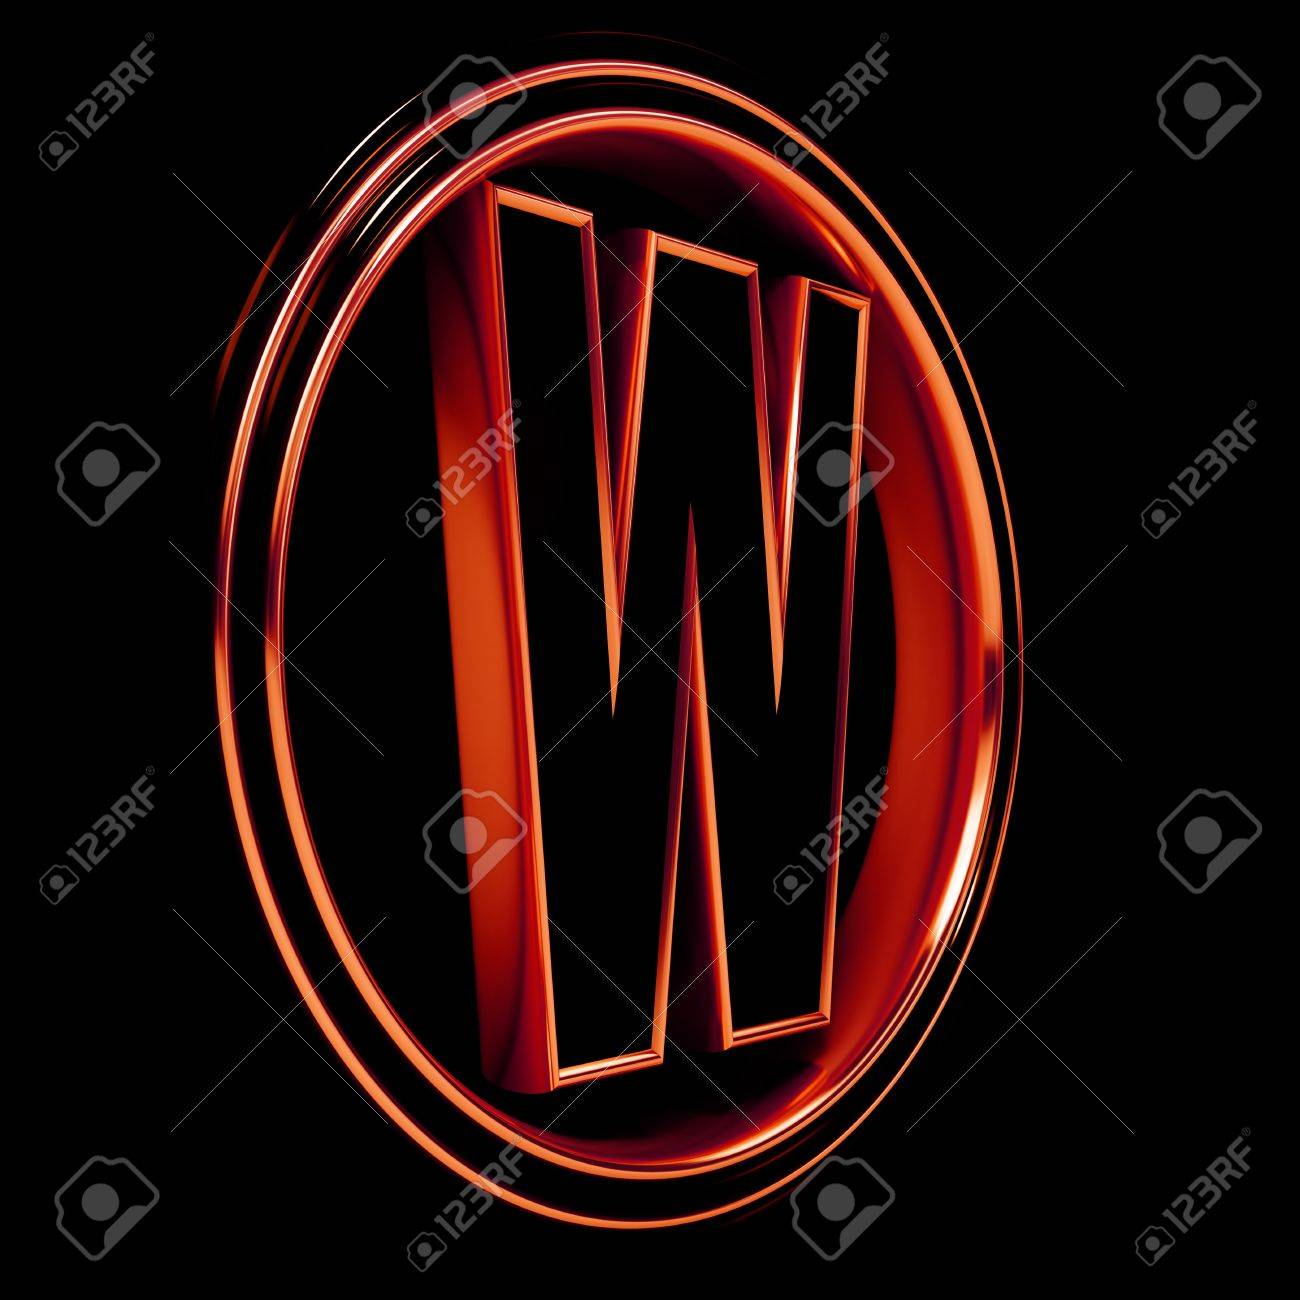 3D Letter W in circle. Red metal. Black background Stock Photo - 9022545